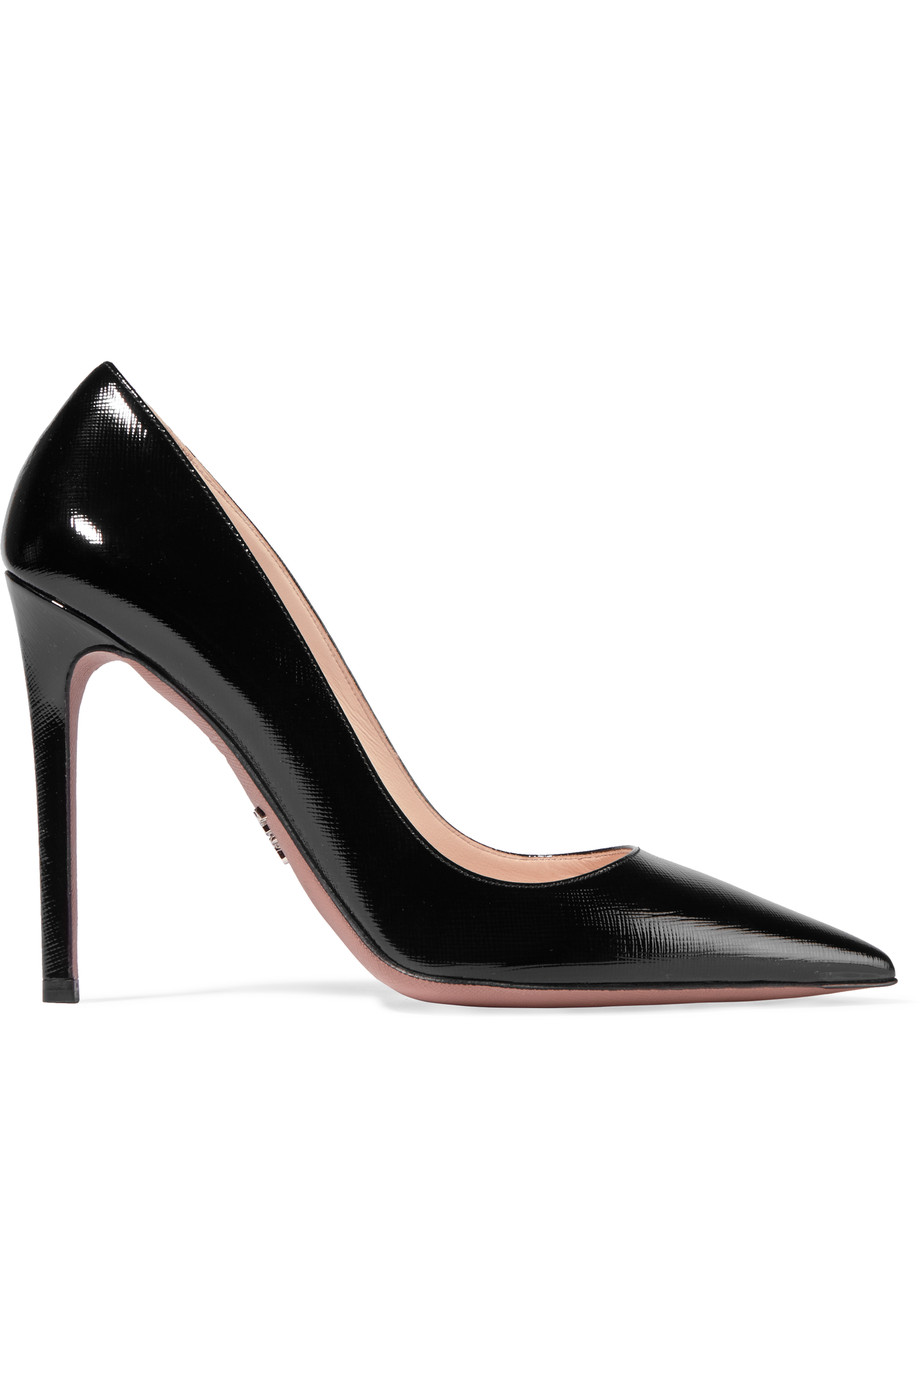 PRADA leather pumps.jpg